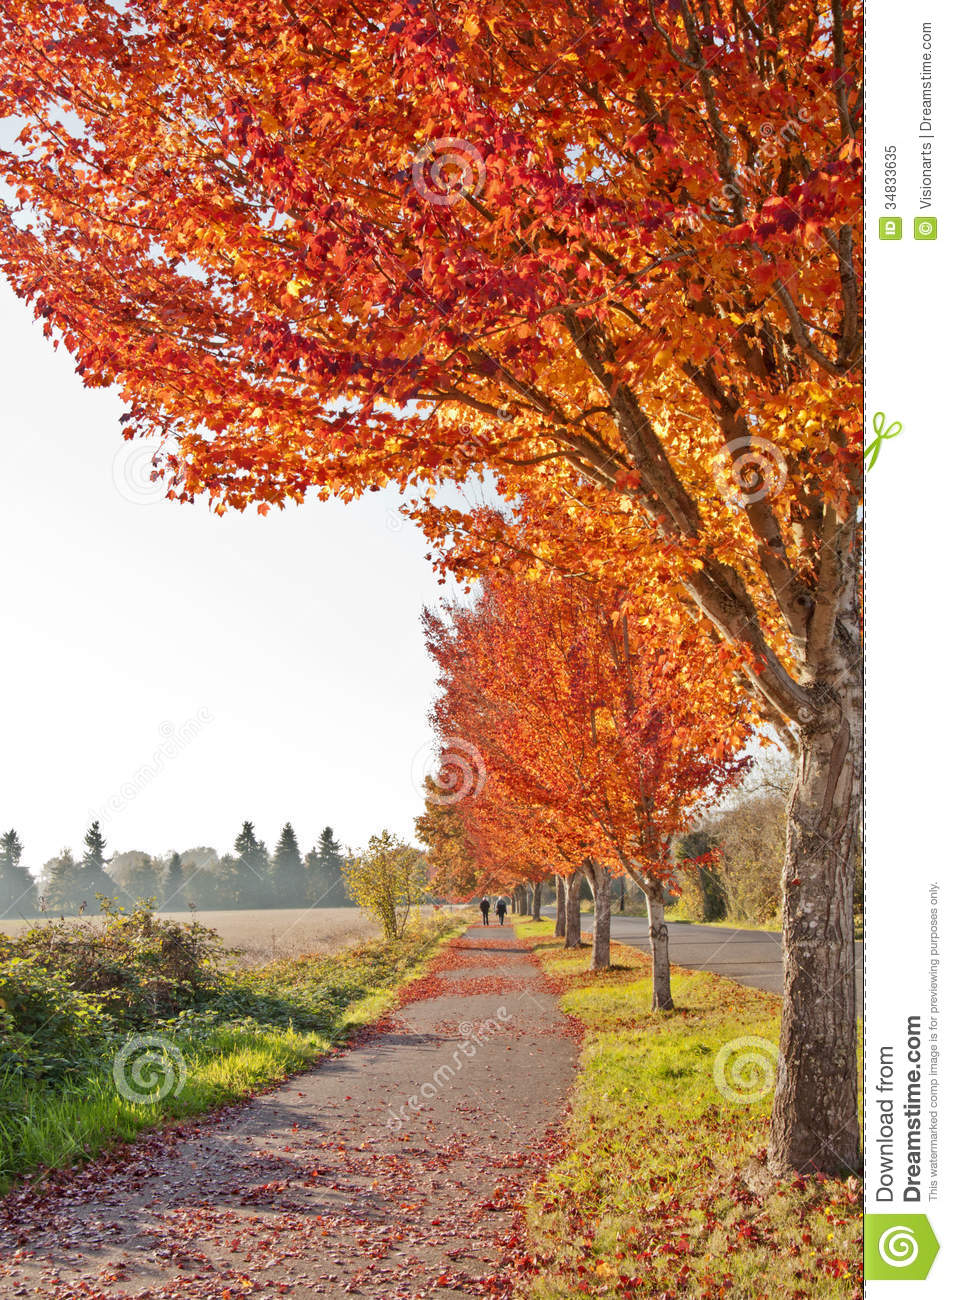 Fall Foliage Wallpaper Hd Beautiful Autumn Walkway With Orange Colored Leaves Stock